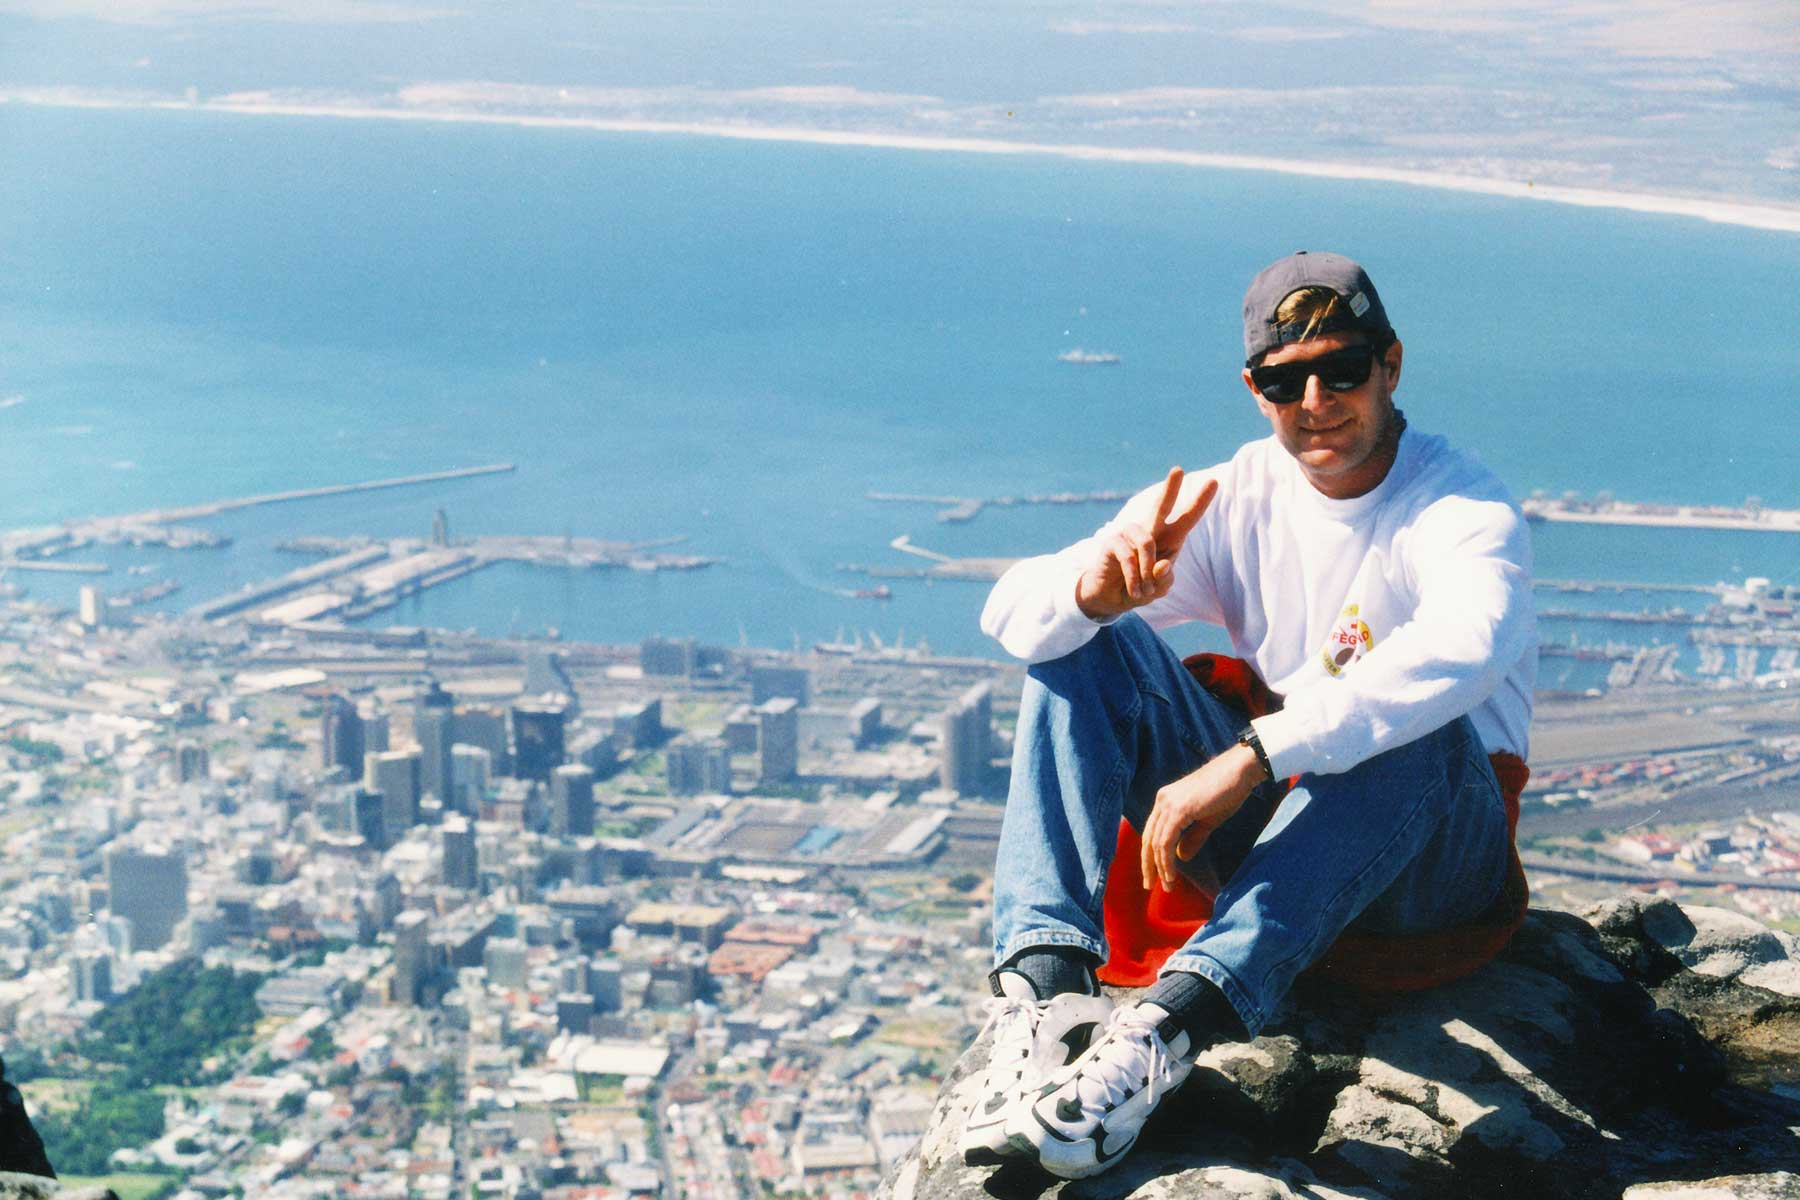 Atop Table Mountain - Cape Town - Steven Andrew Martin PhD - South Africa Photo Journal